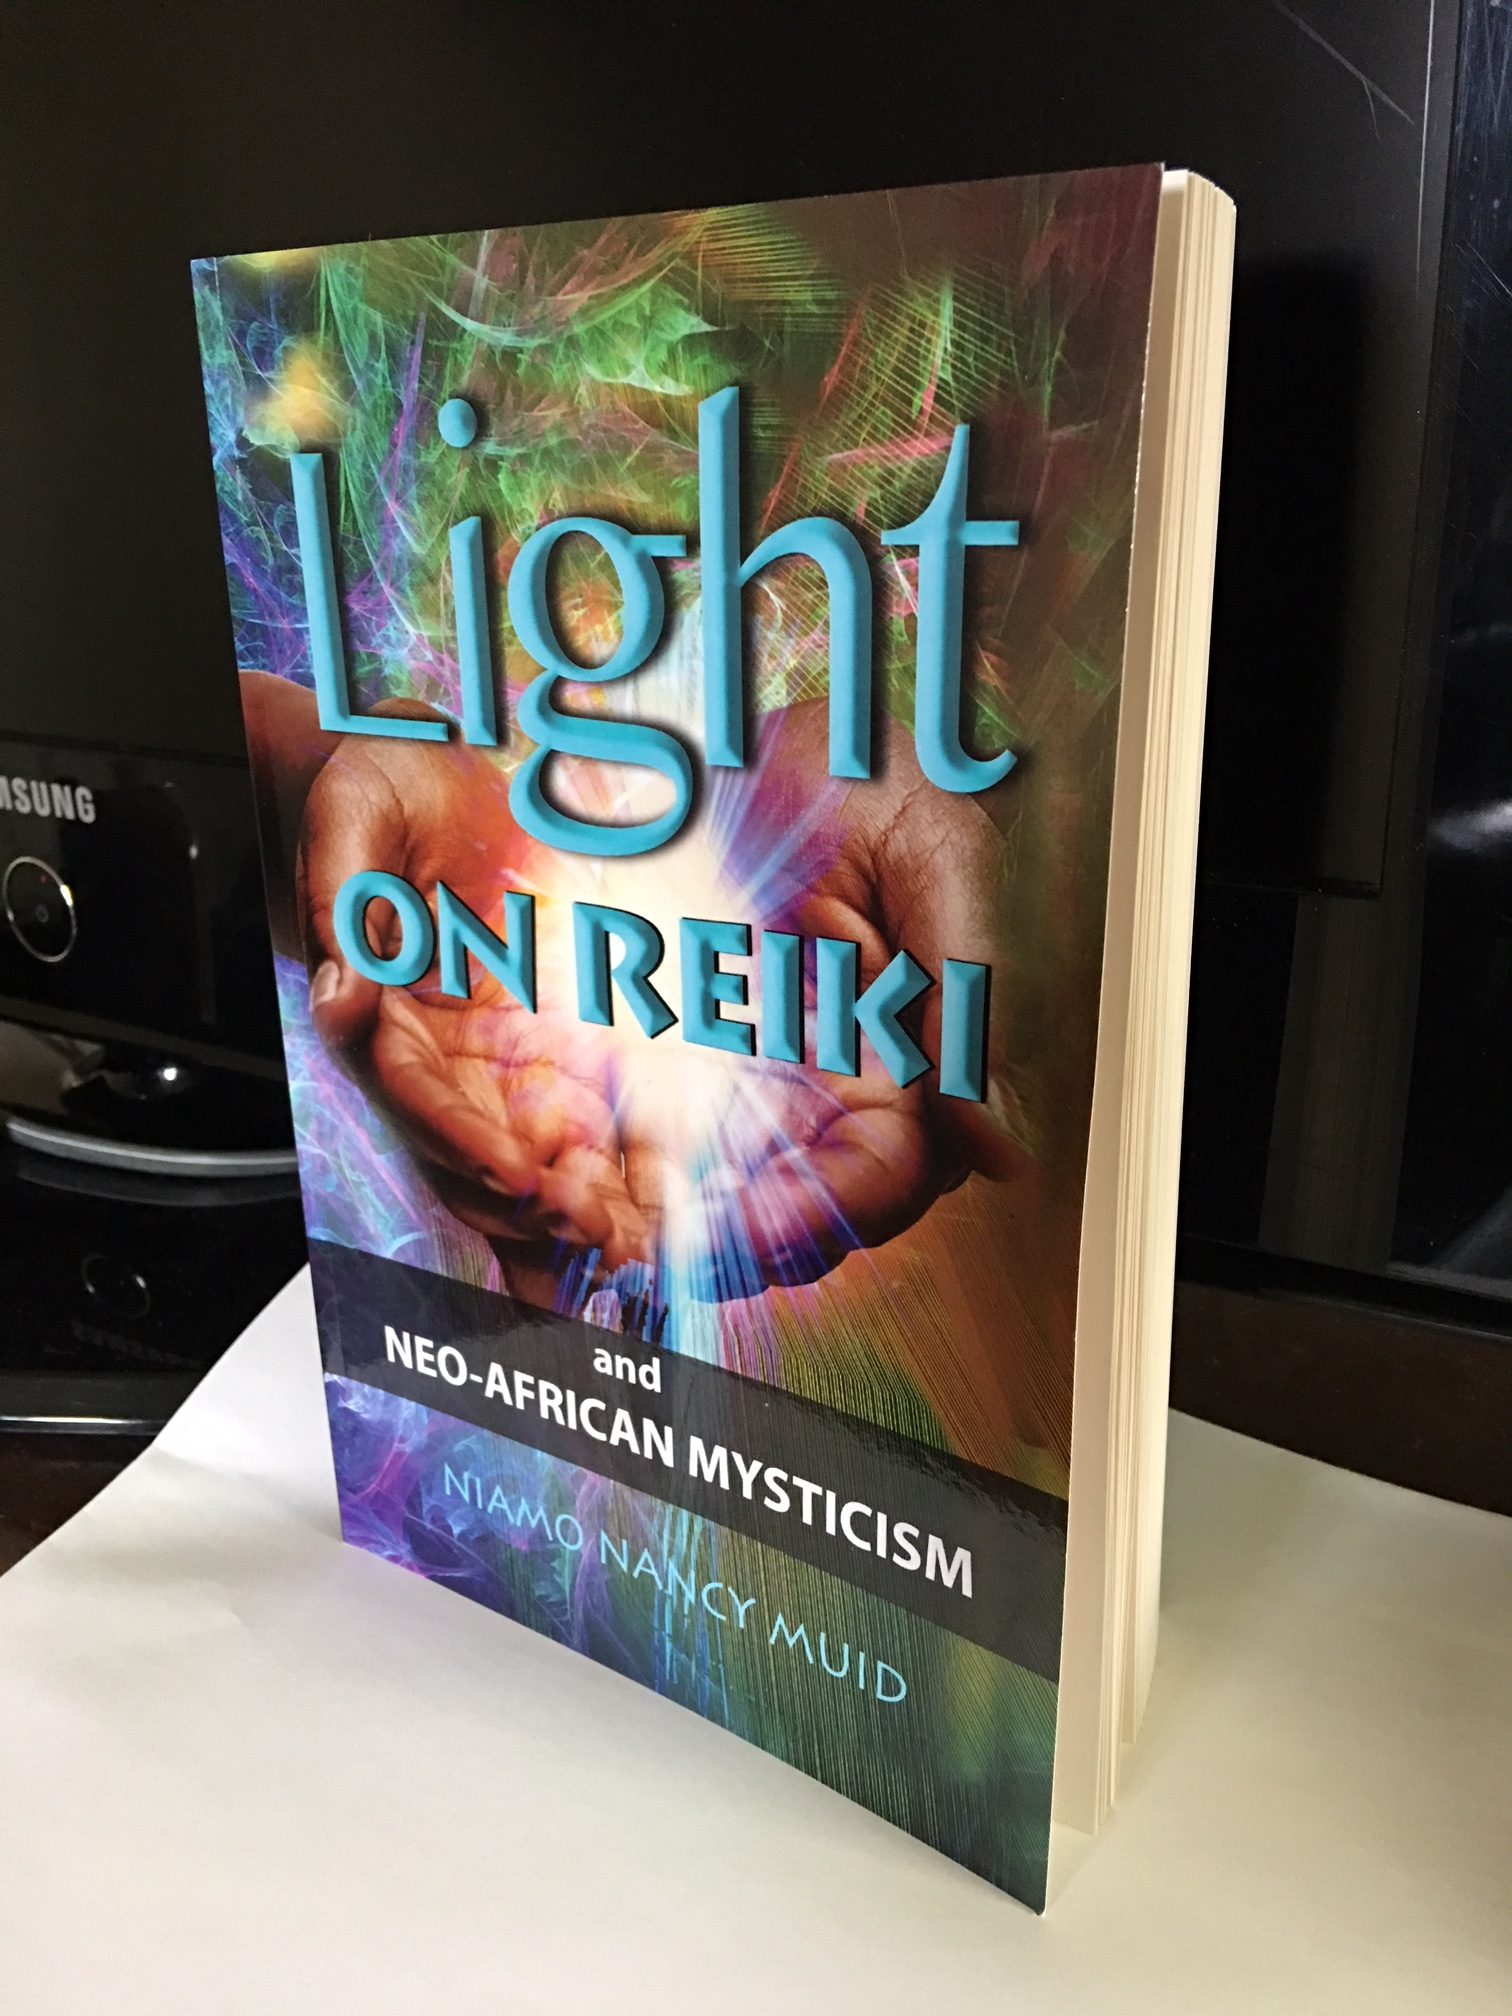 Light on Reiki and Neo-African Mysticism